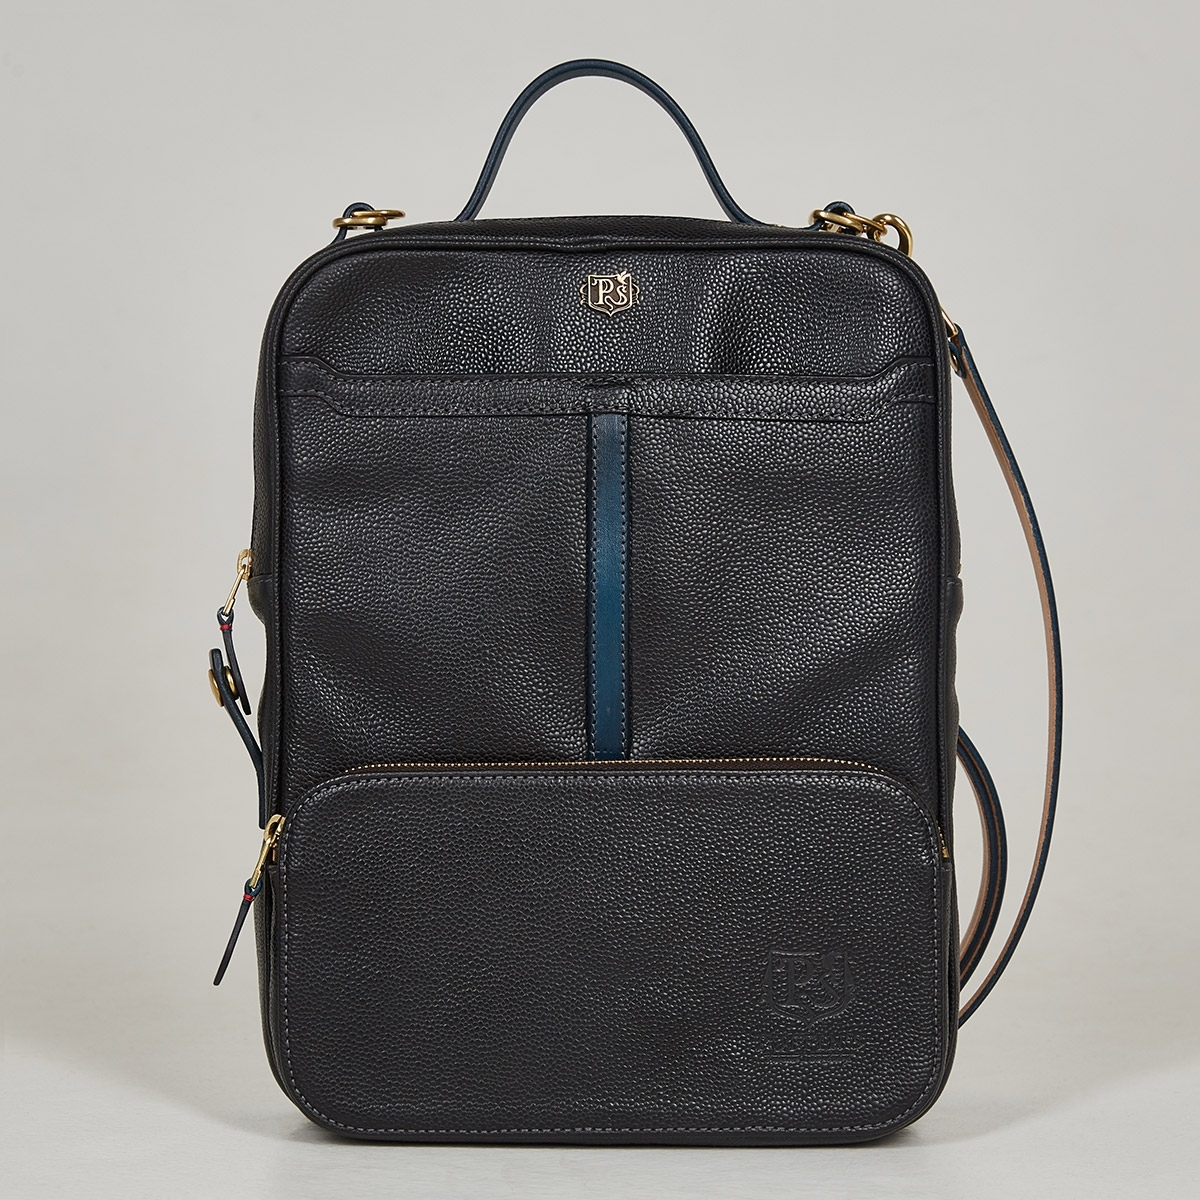 Crossbody bag-transformer CHELSEA sapphire blue & grain black